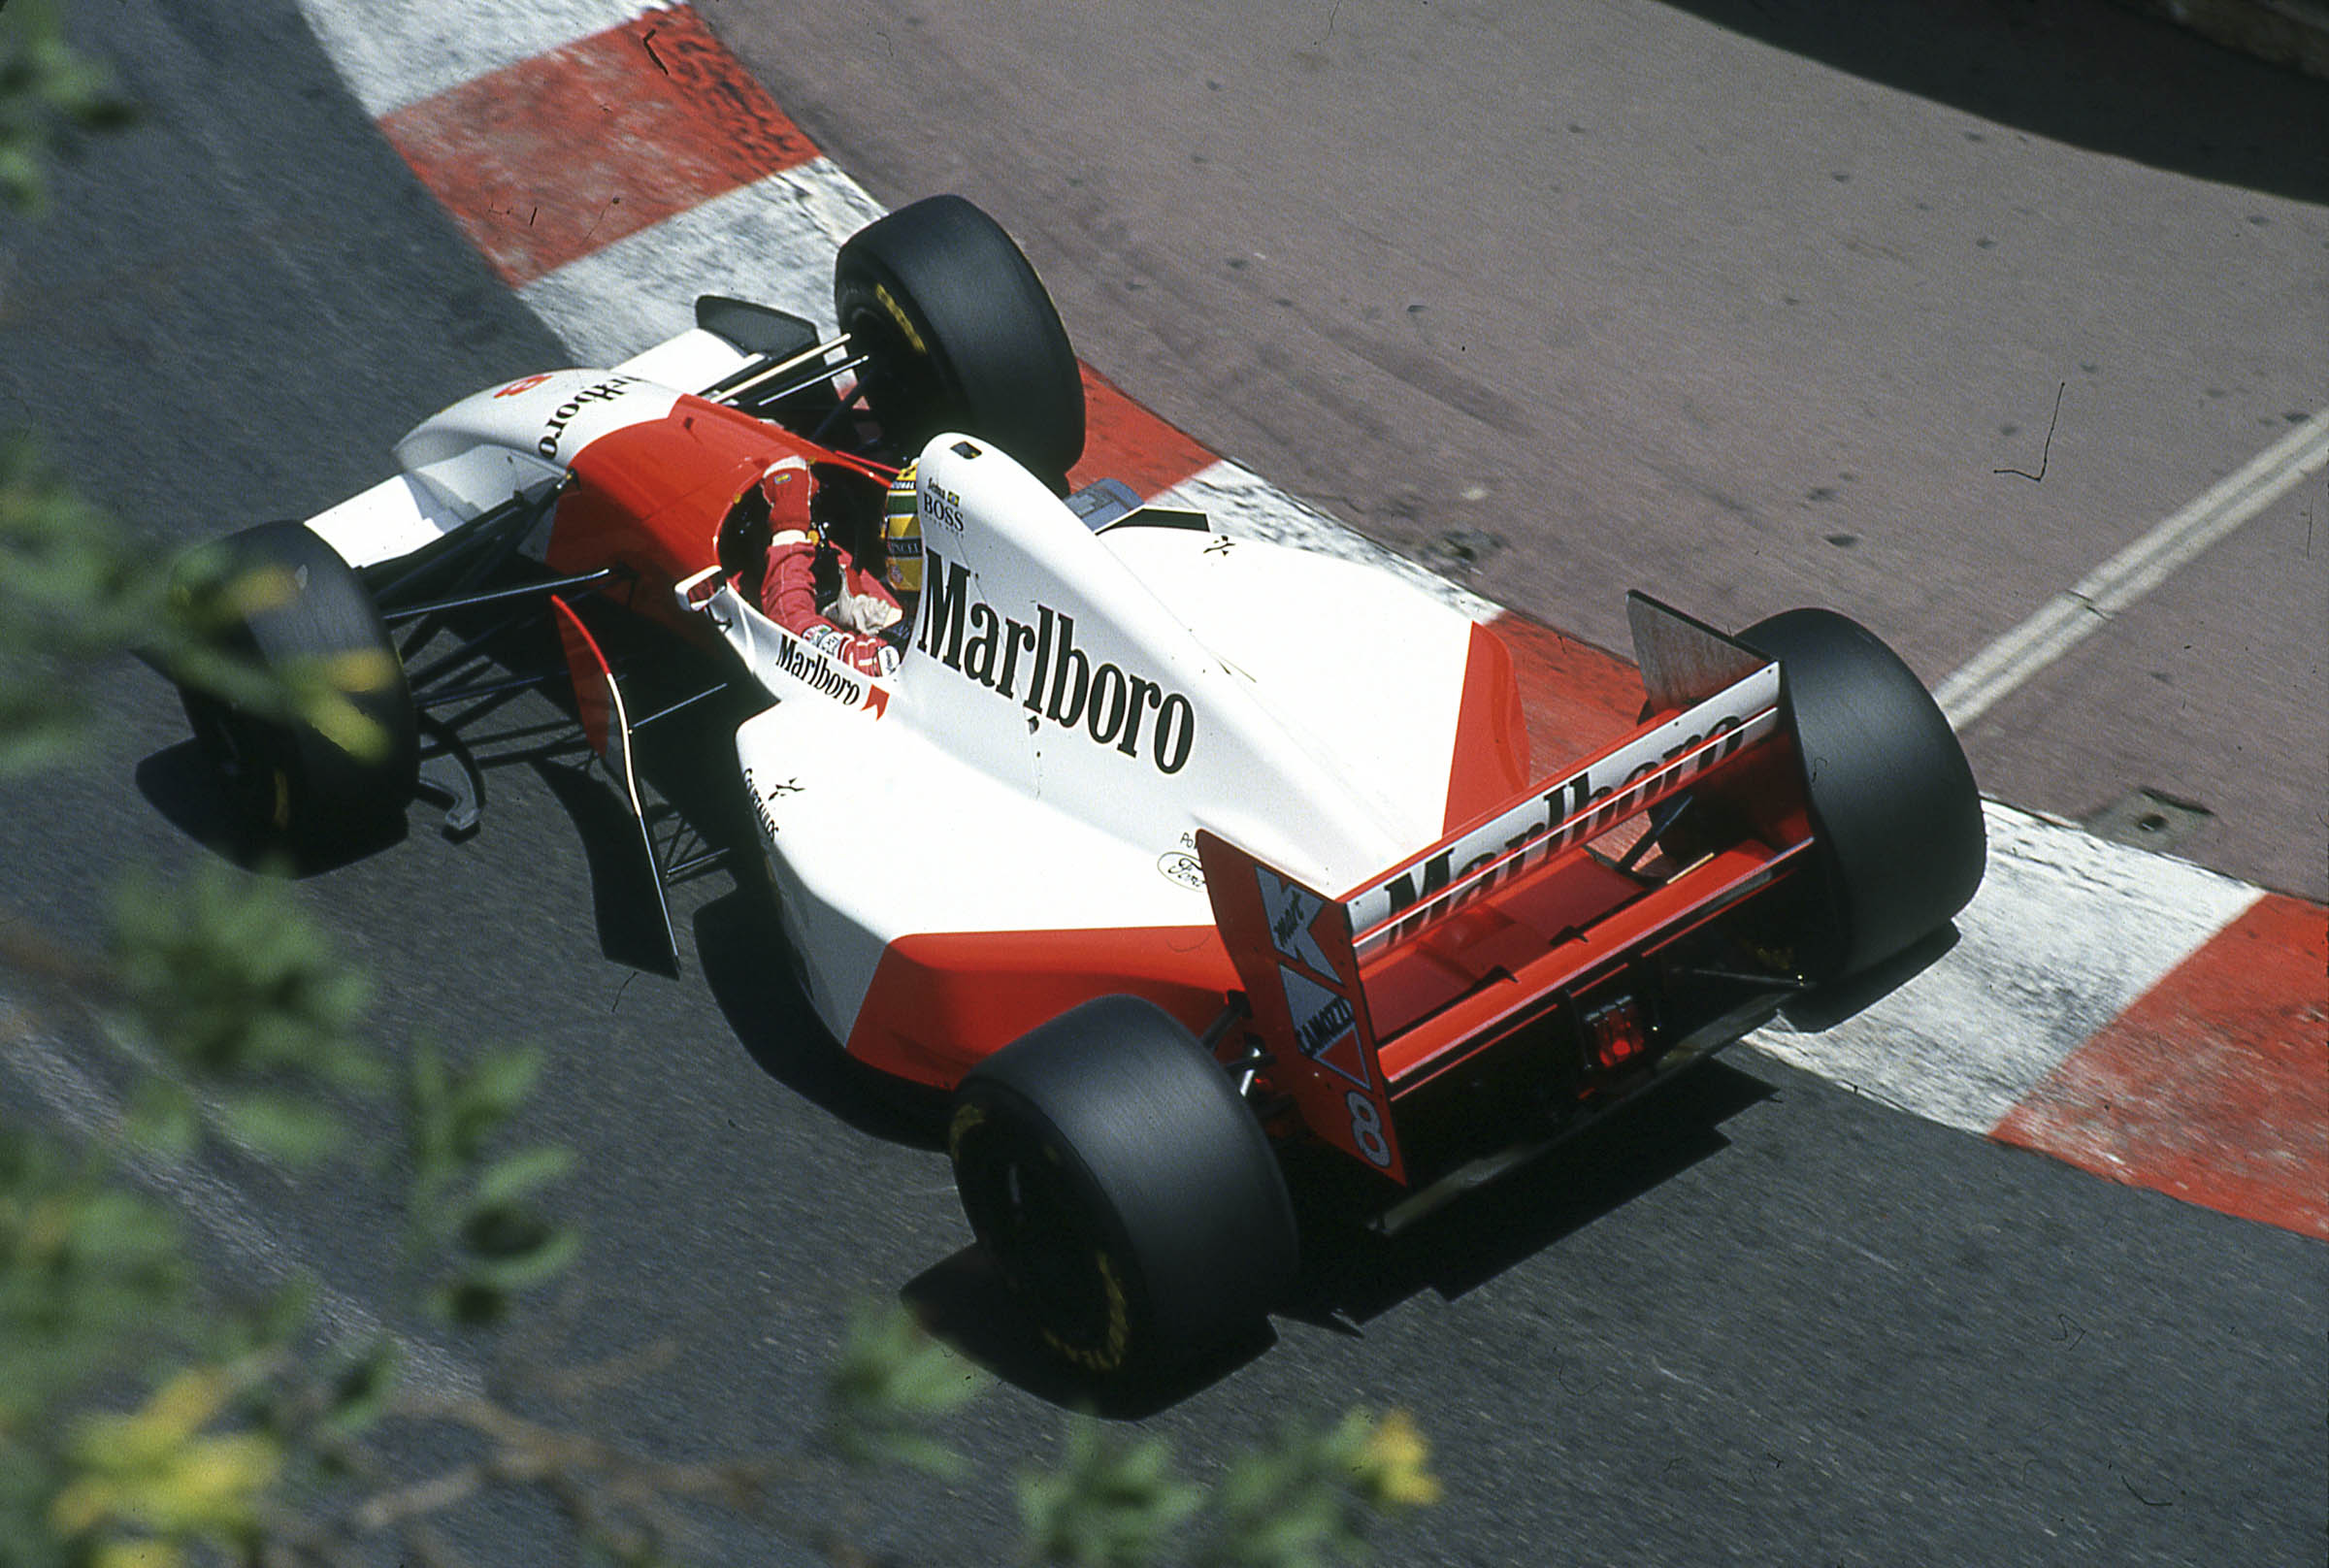 1993 McLaren MP4/8A Chassis no. 6 being raced